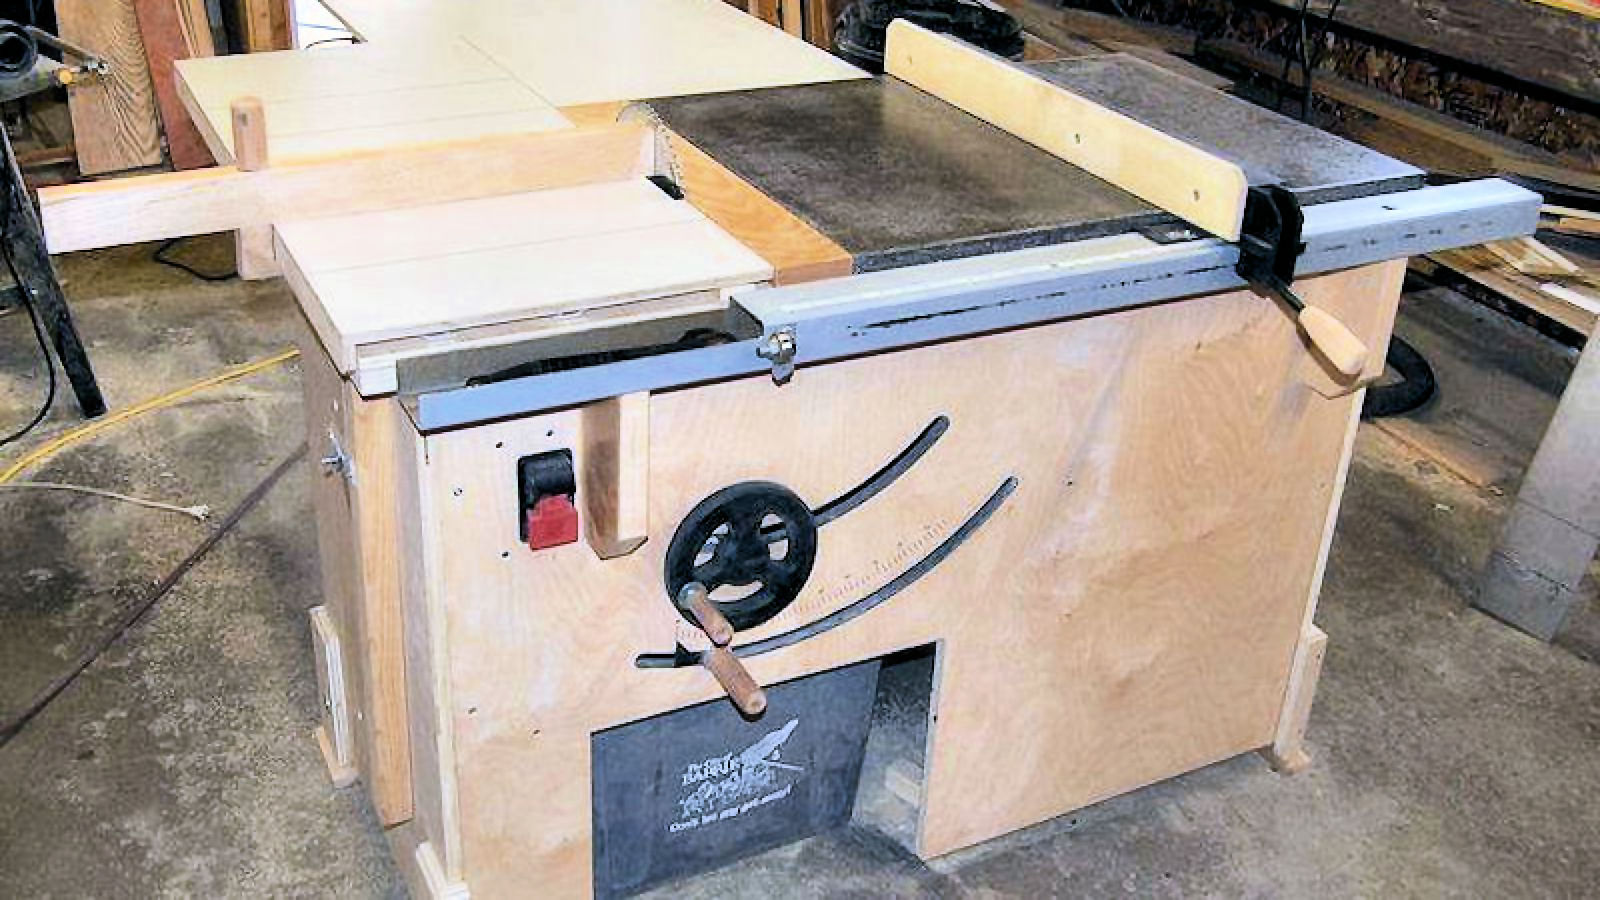 How To Cut Notches In Wood With Table Saw